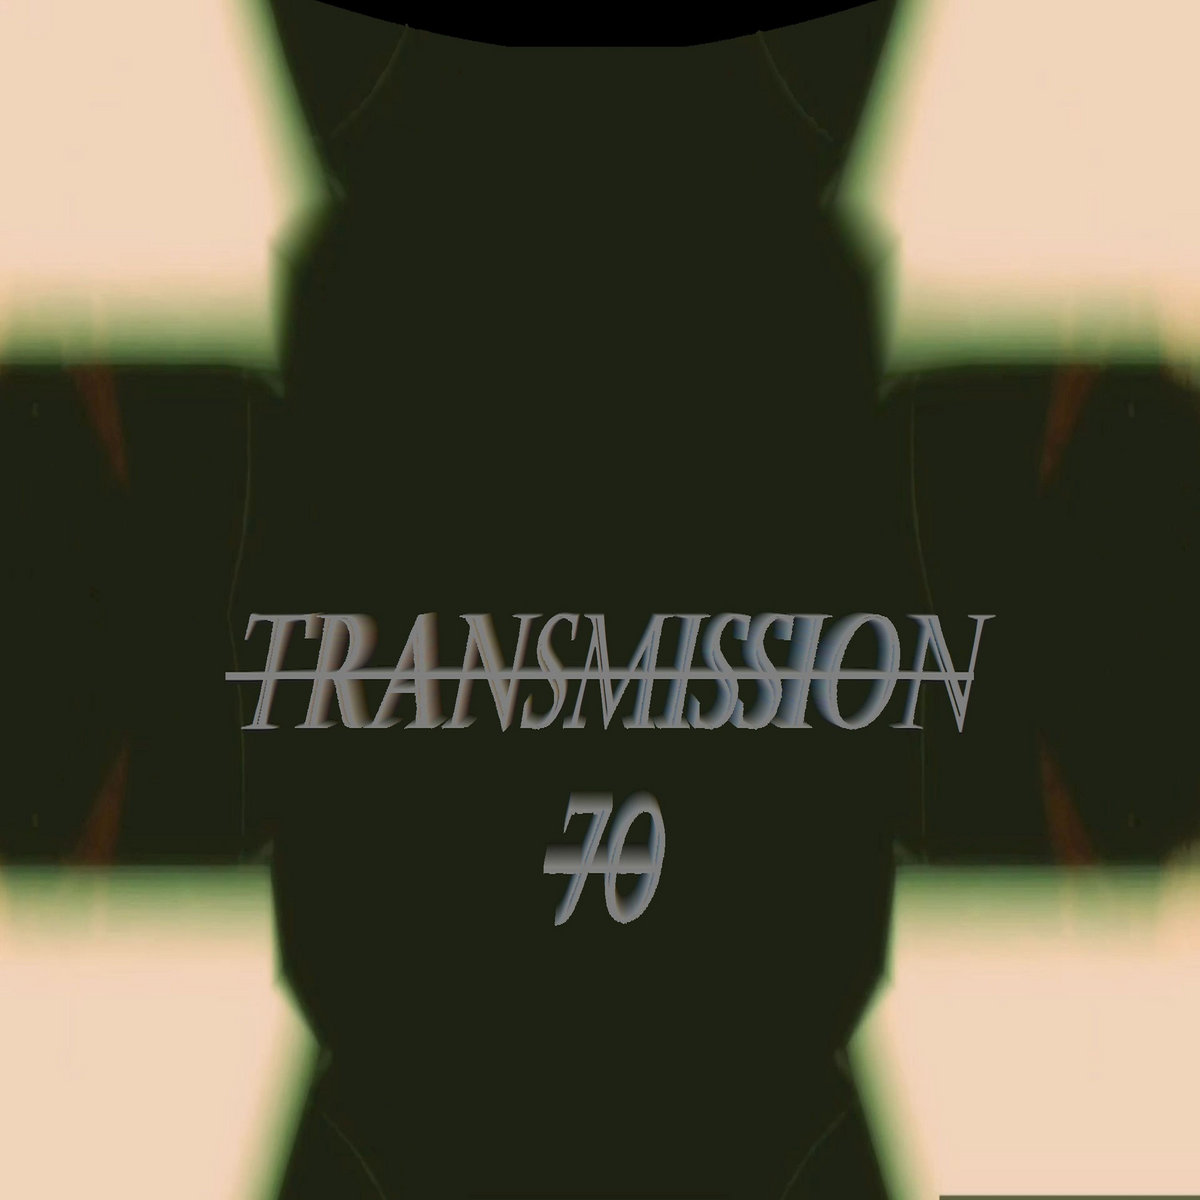 """WooliebuGGer - """"Drift/Transmission 70"""" Reaction   Opinions   LIVING LIFE FEARLESS"""